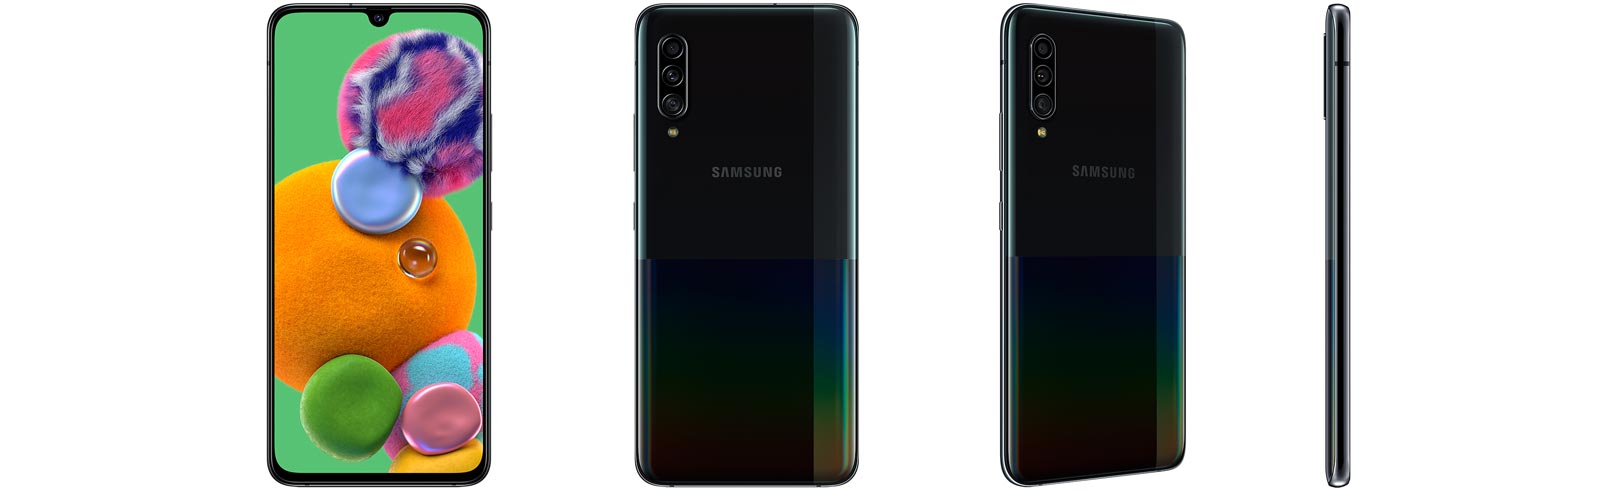 Samsung launches the Galaxy A90 5G, boasts Snapdragon 855 chipset